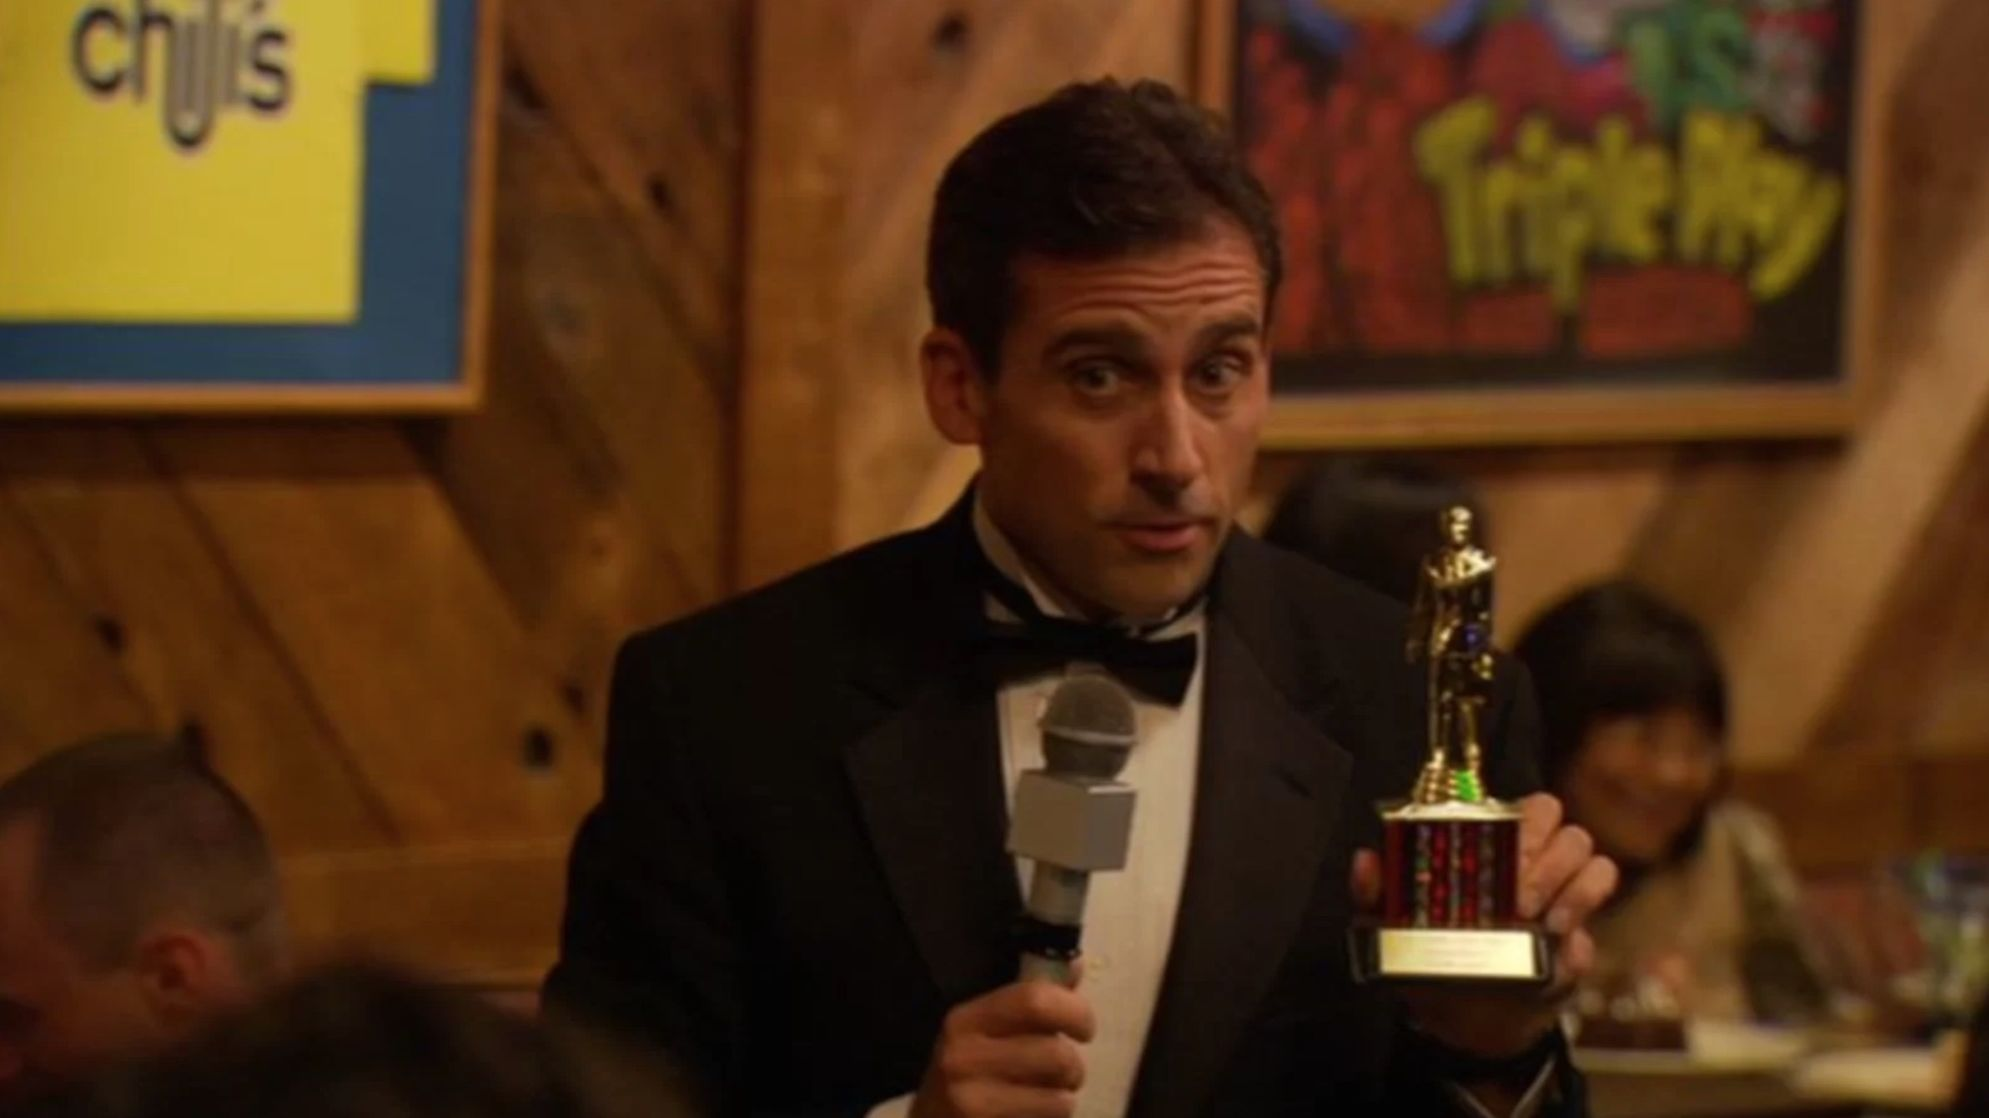 Mifflin Madness: Who Is the Greatest Character on The Office? It's Time to Vote Once and For All